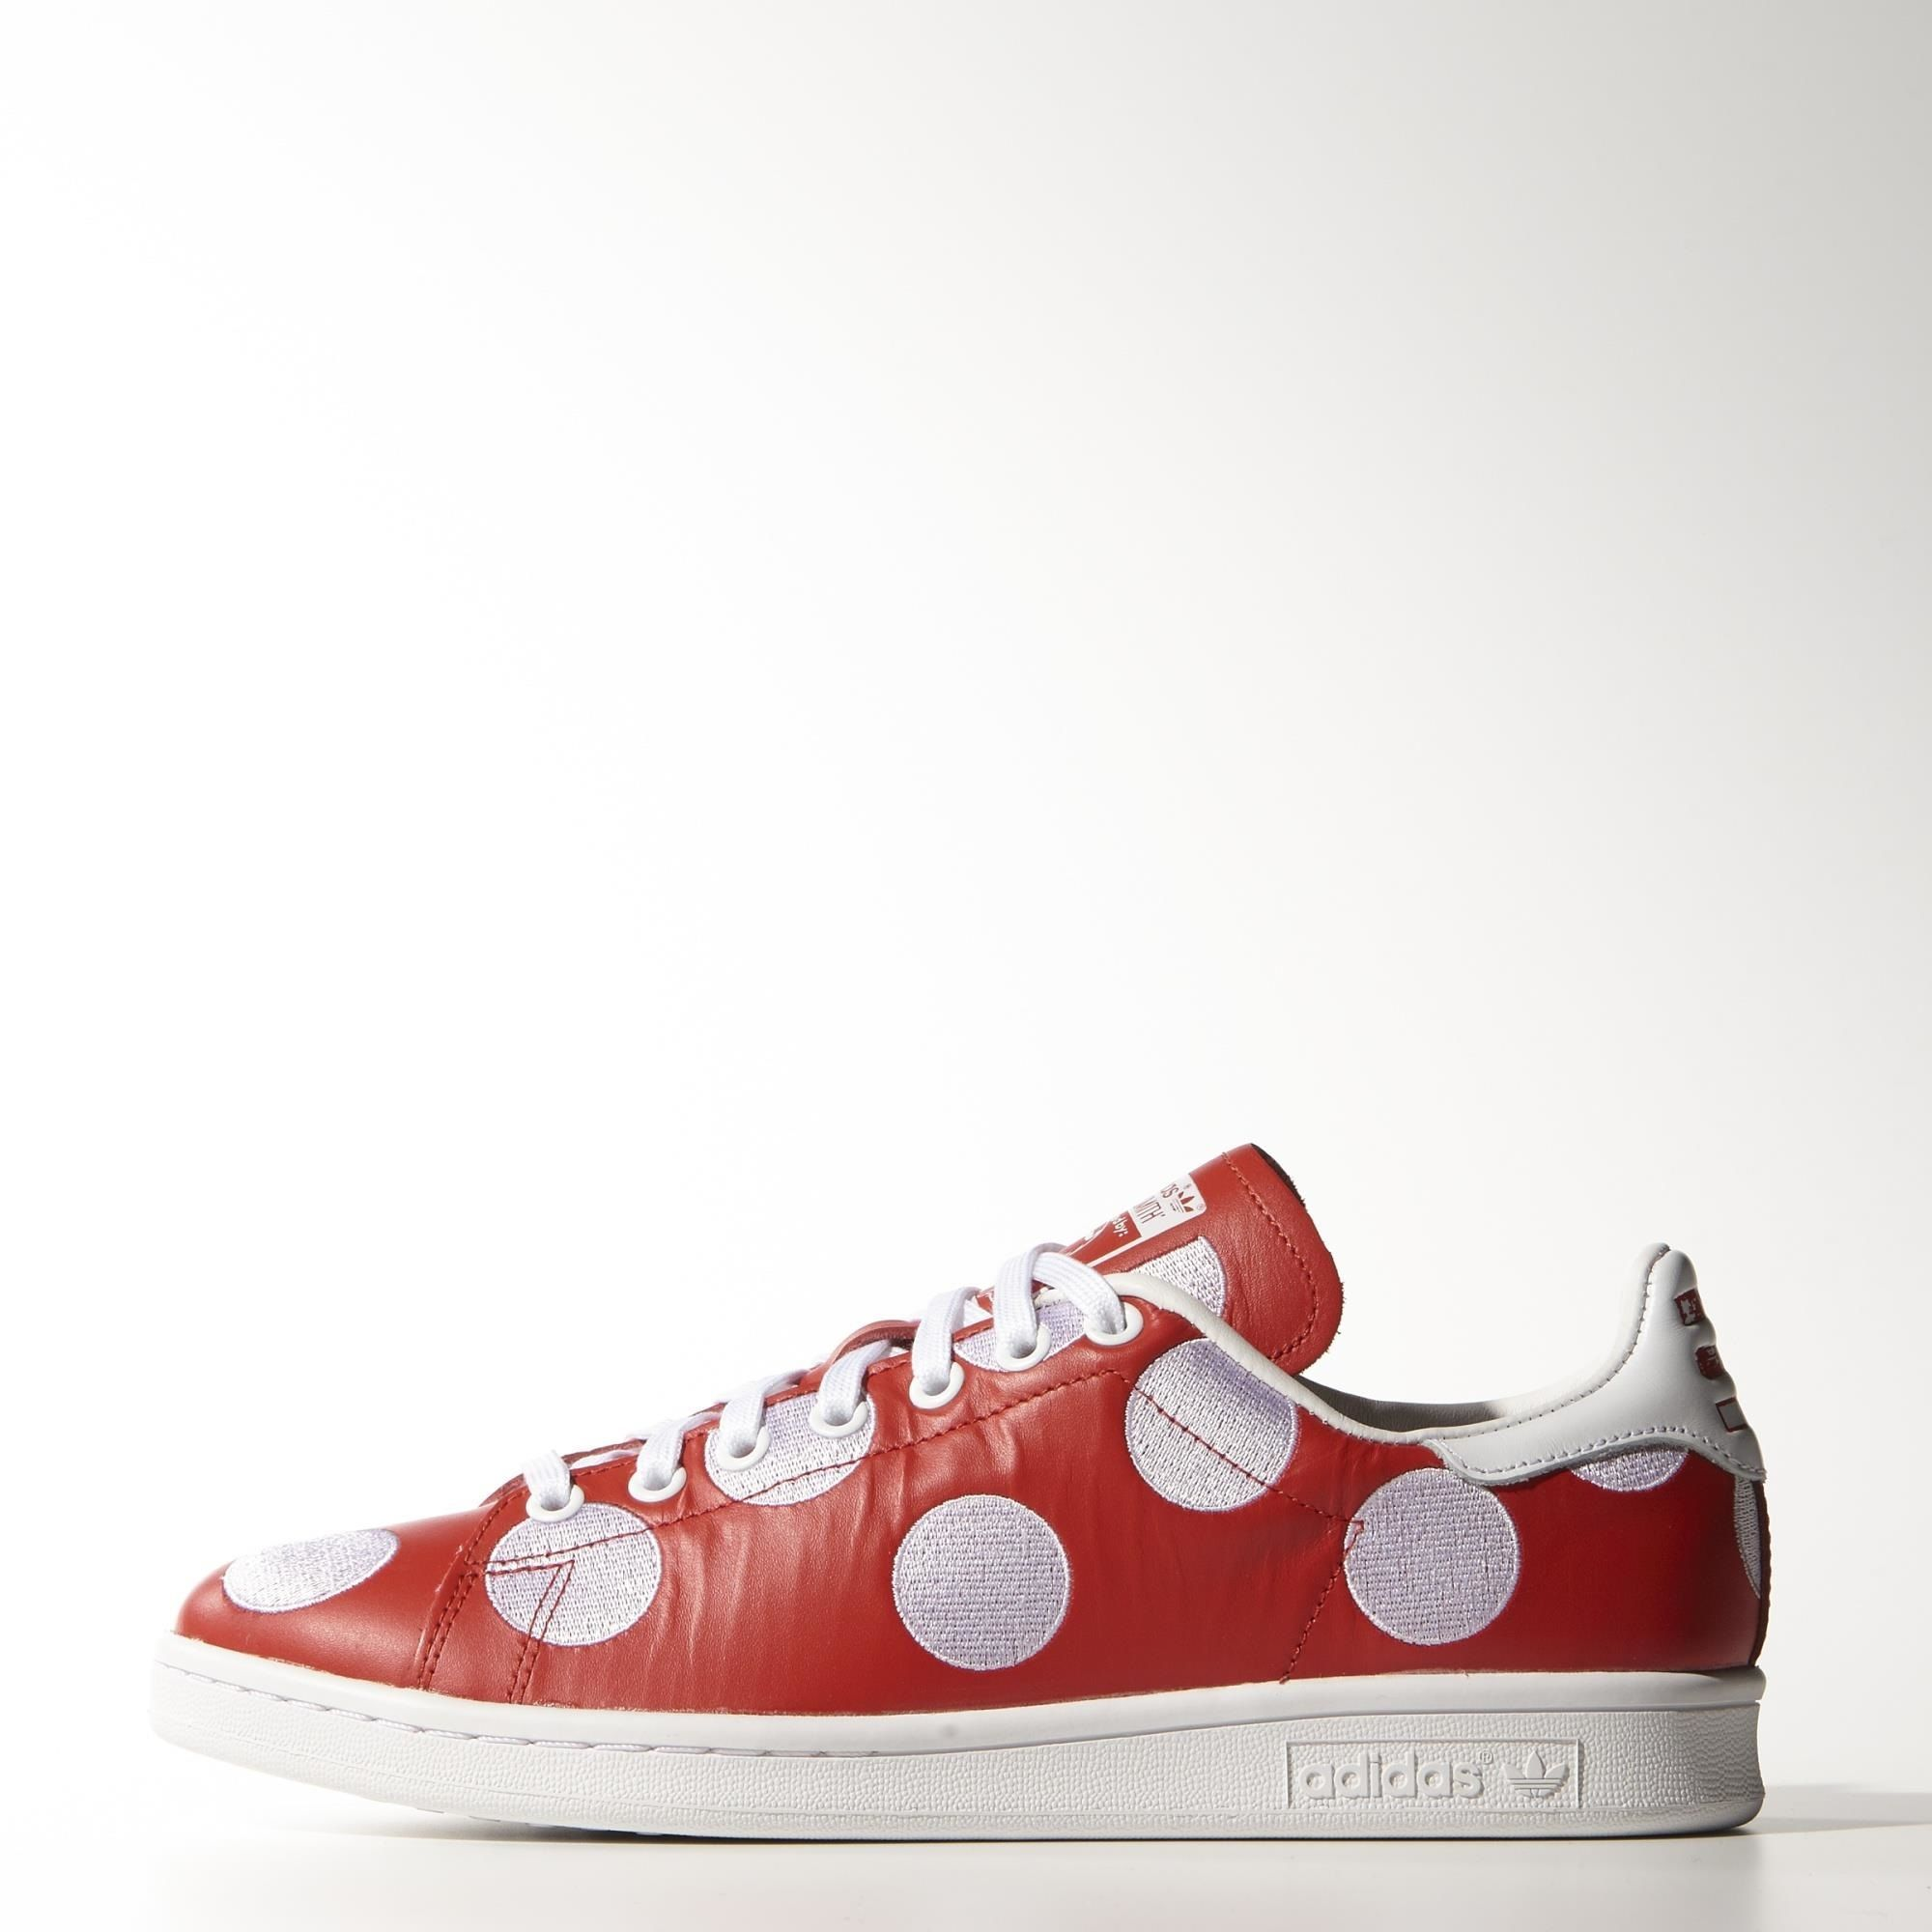 Chaussure Pharrell Williams Stan Smith A Gros Pois Adidas Adidas France Chaussure Chaussures Stan Smith Pharrell Williams